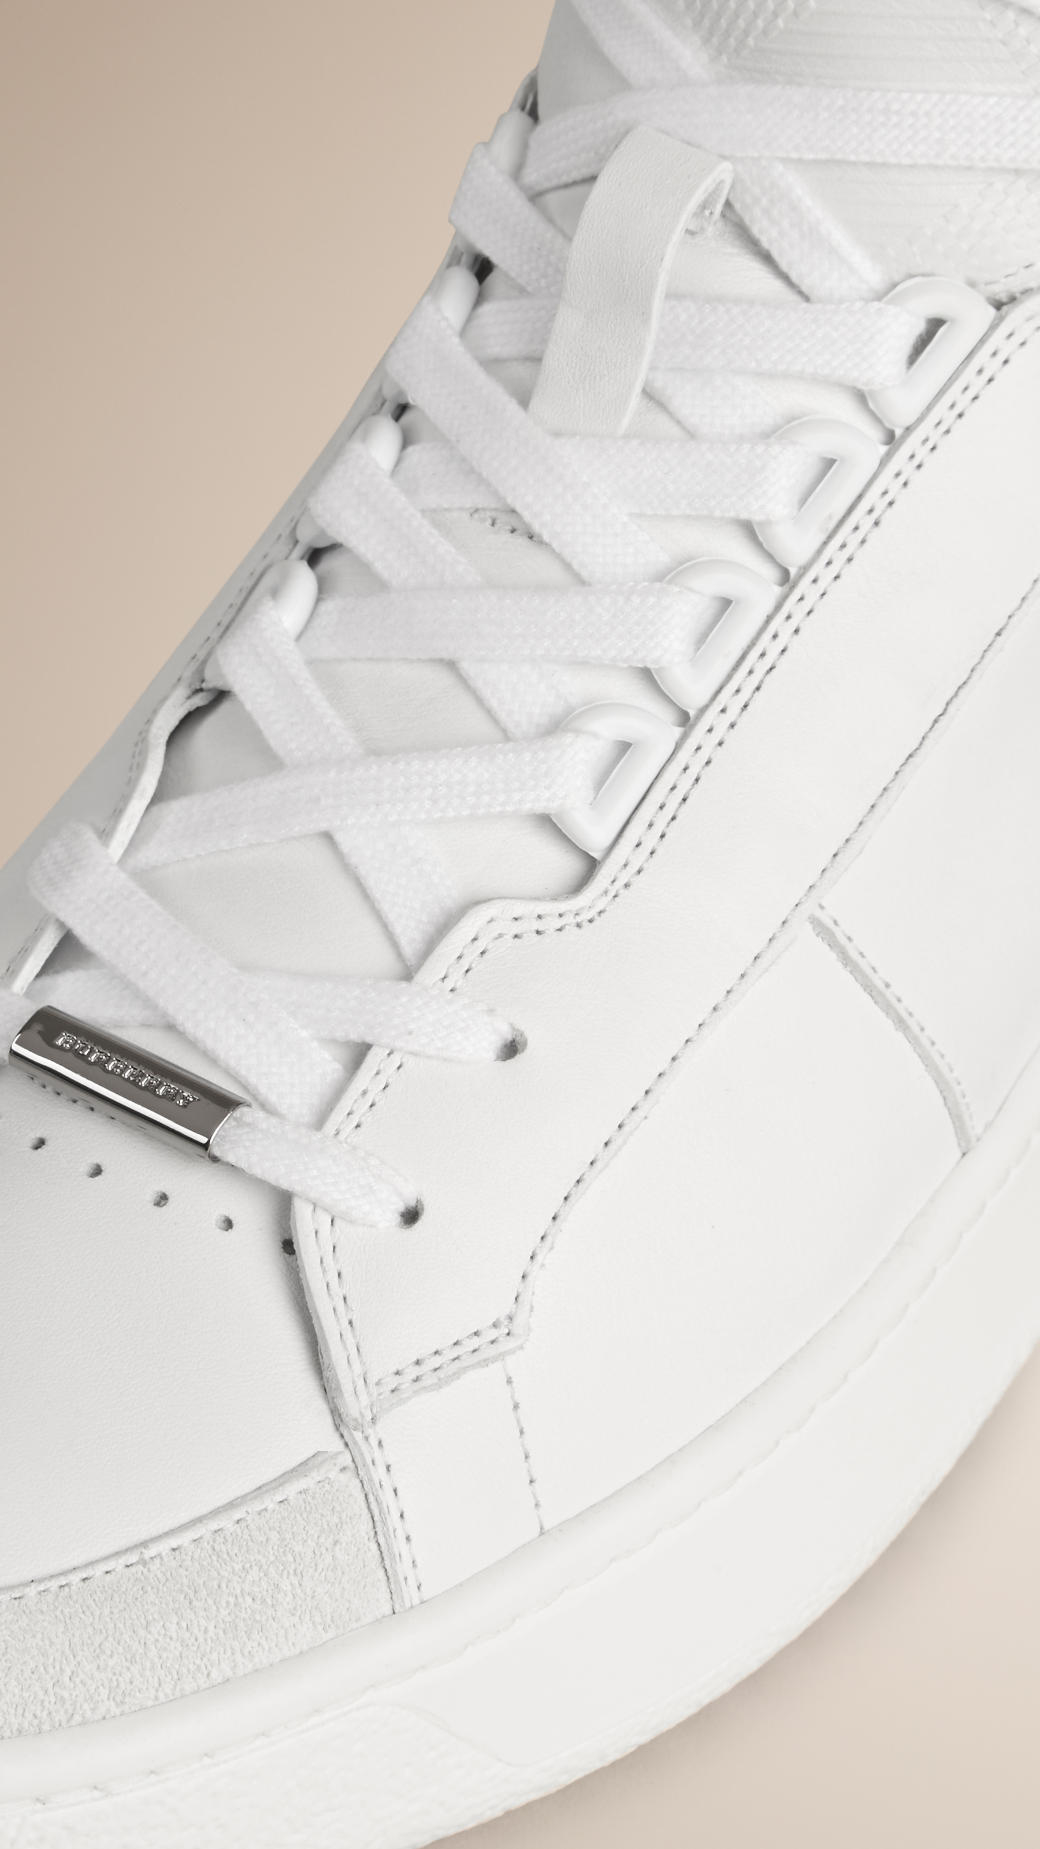 Leather and Suede High-top Sneakers - White Burberry Fast Express Newest Online Sale Deals 579mIpg